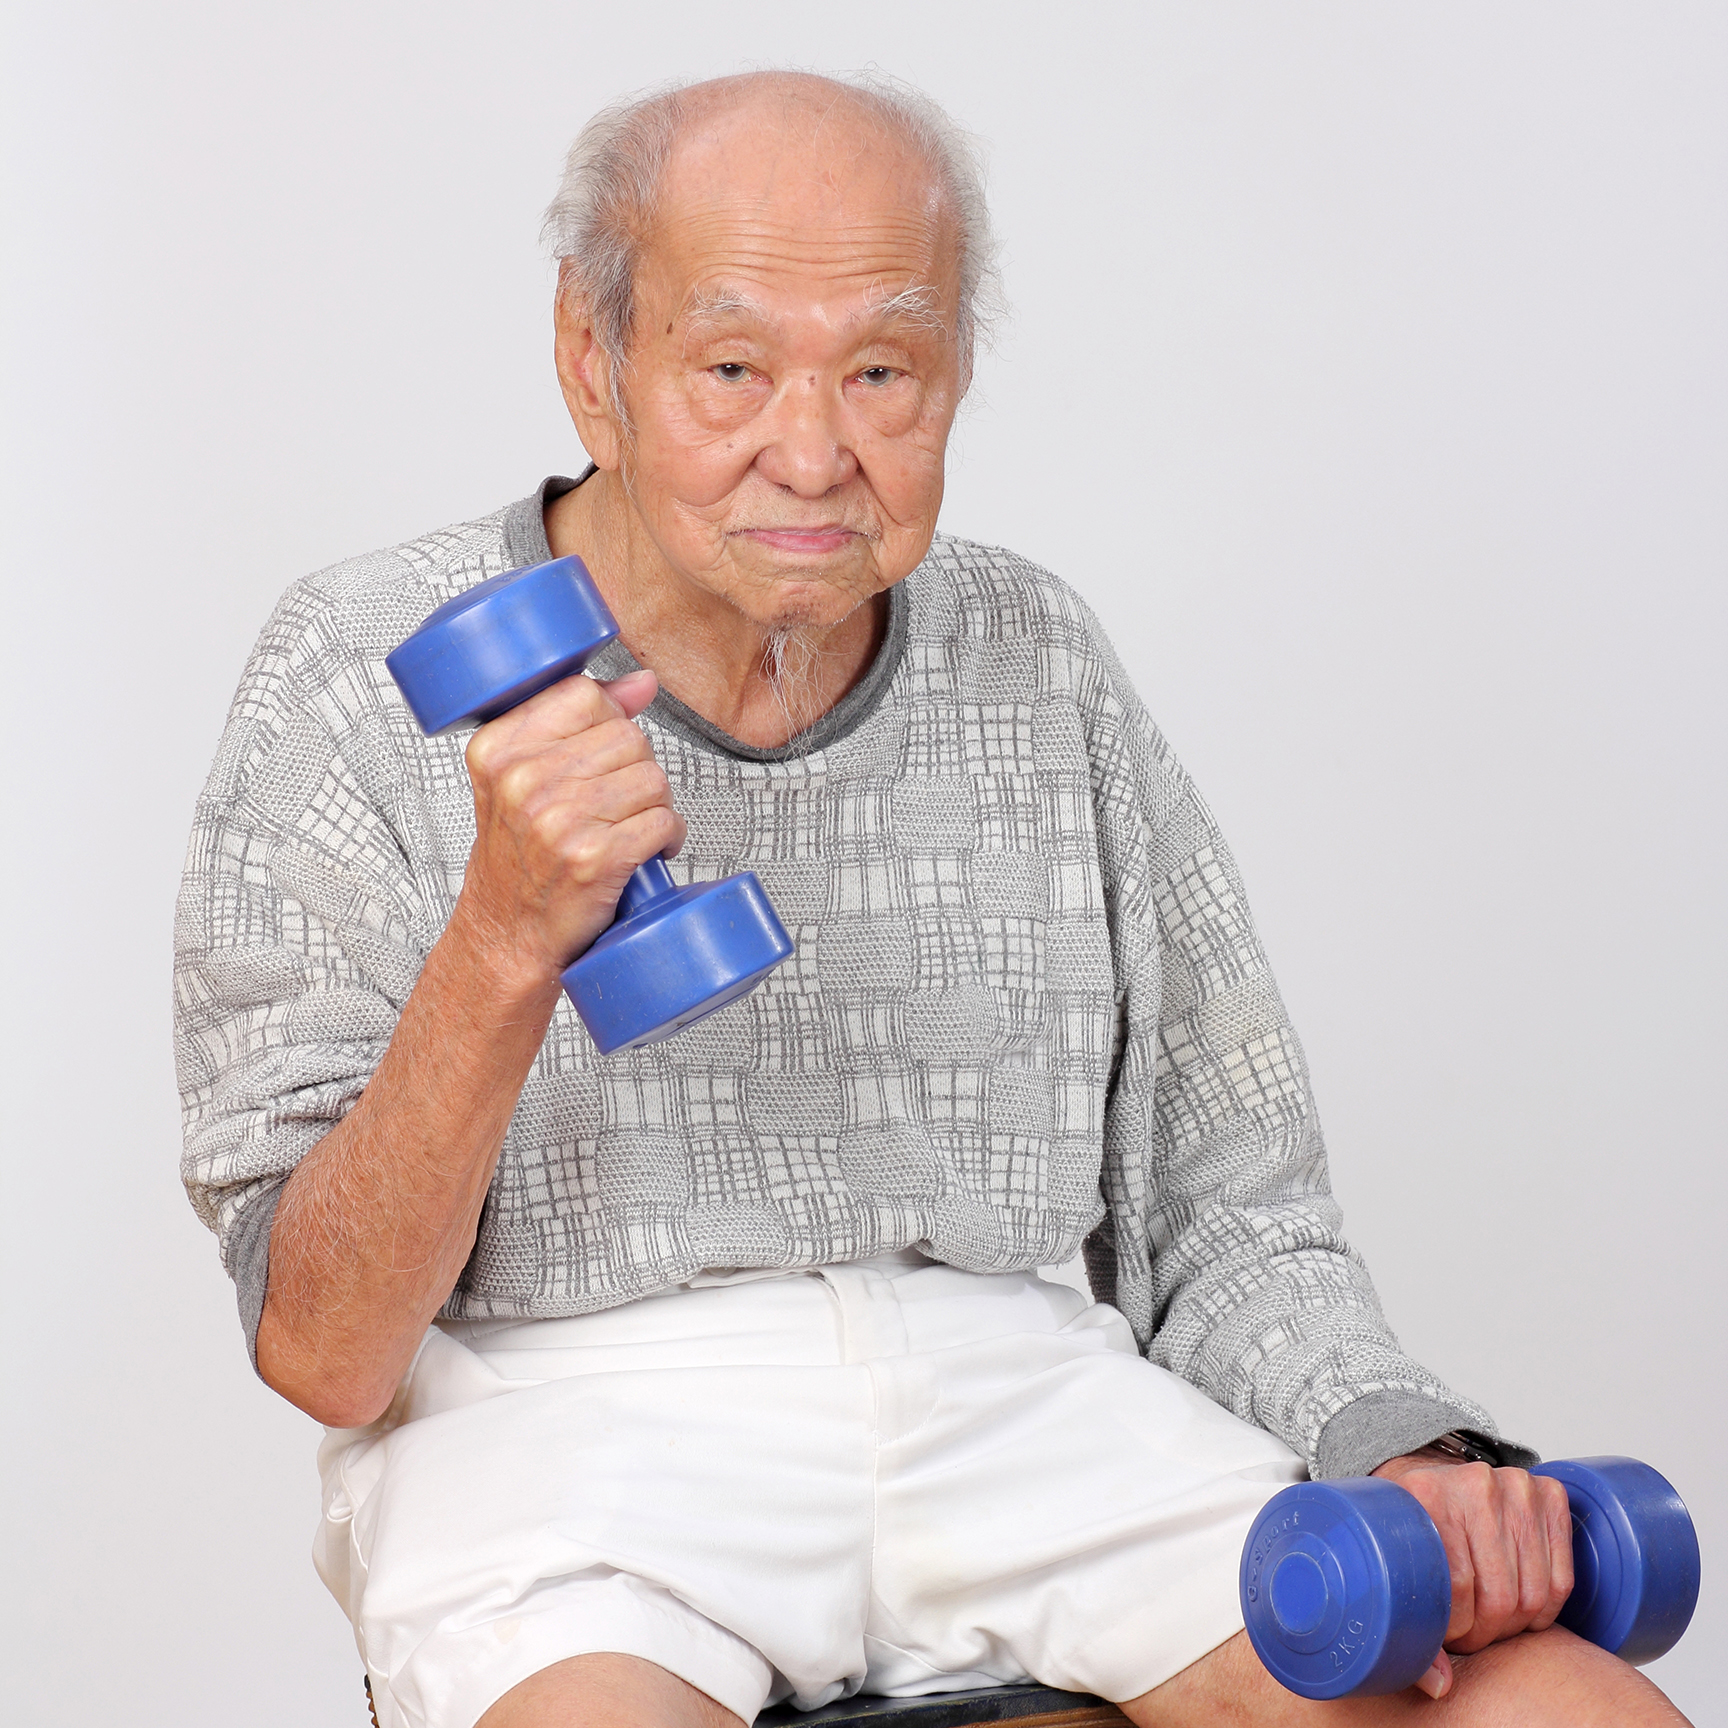 We lose strength as we age, Encompass HealthCare & Wound Medicine, West Bloomfield, Michigan